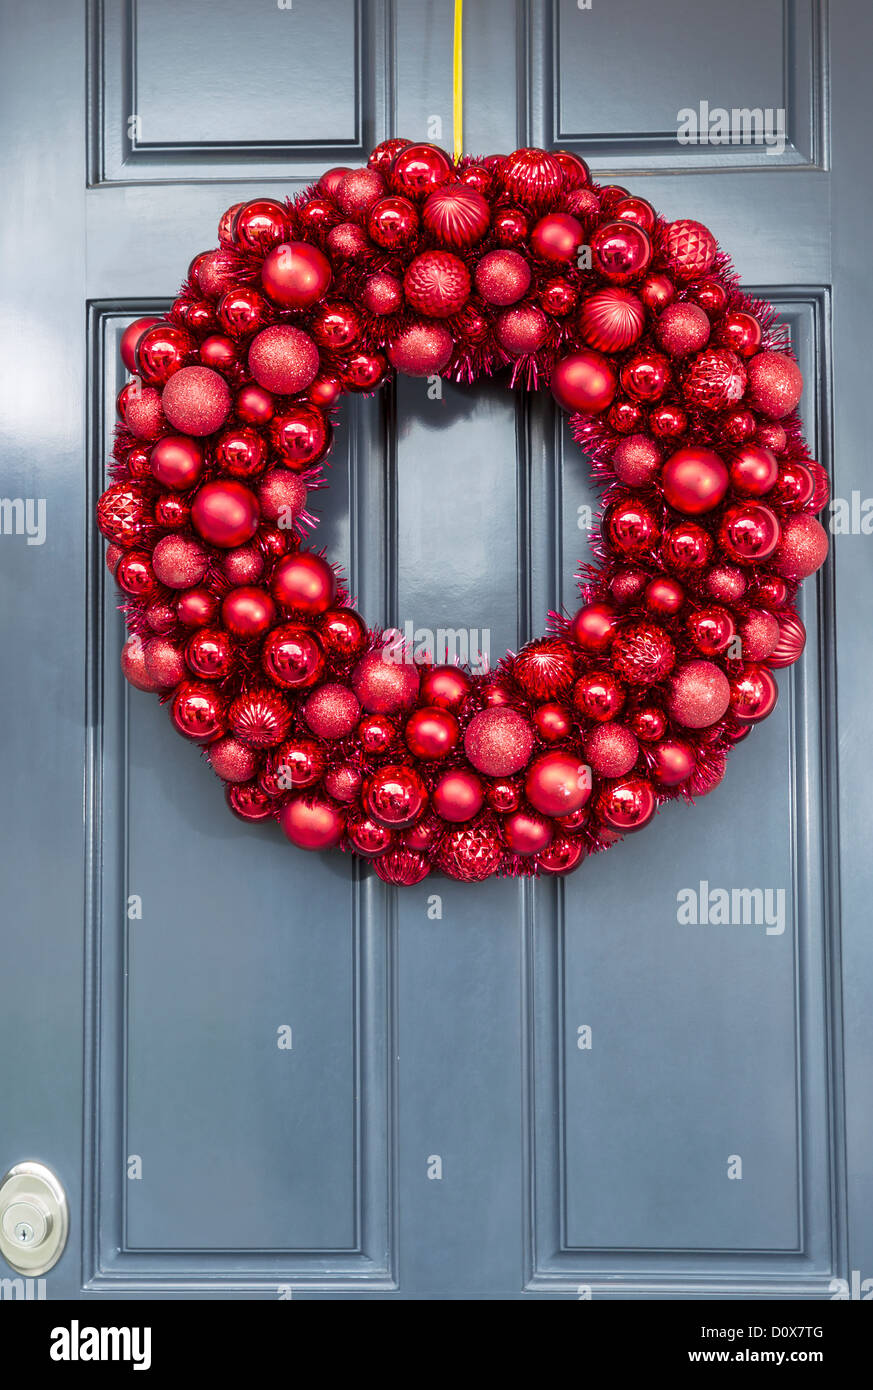 Red Ball Ornaments Wreath Hanging On Outside Of House Door For Holidays